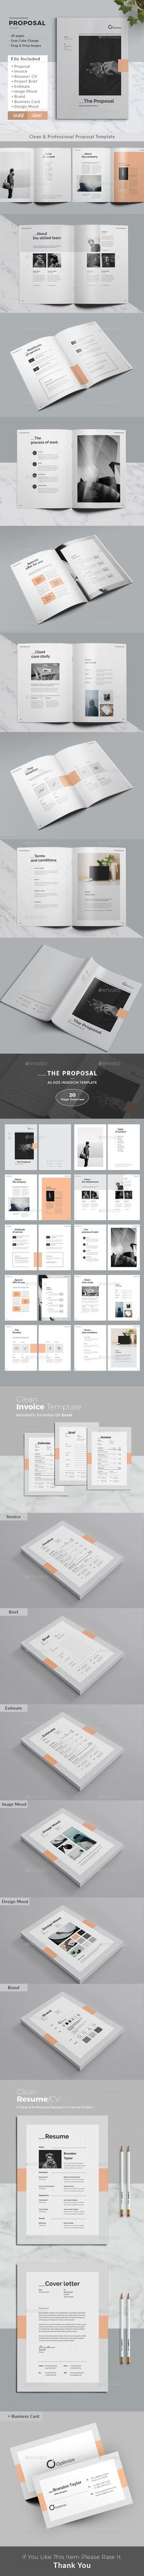 Proposal Pitch Pack - Template PSD, InDesign INDD, AI Illustrator